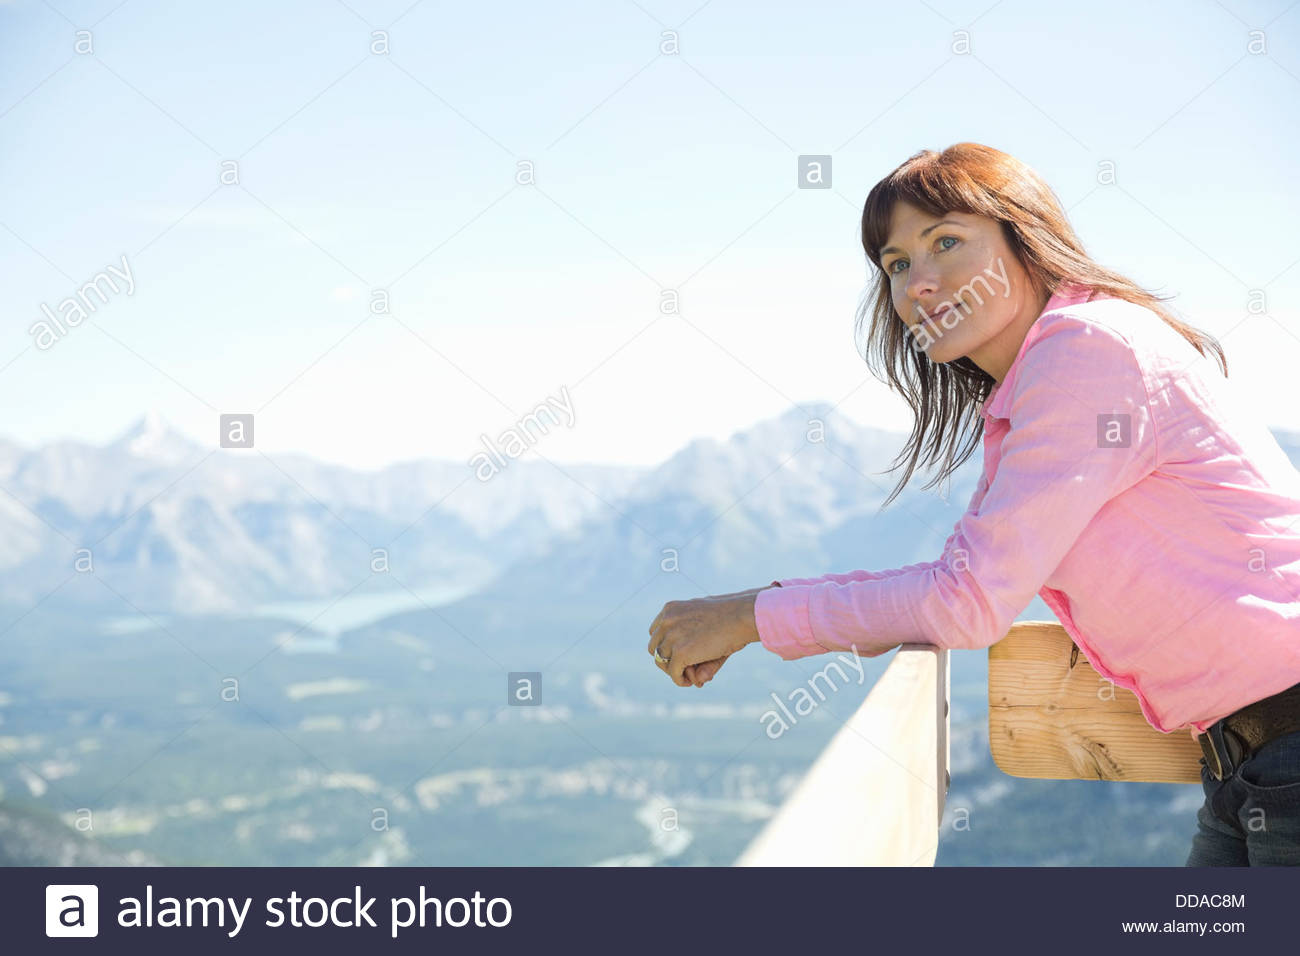 Woman looking out on mountain view - Stock Image